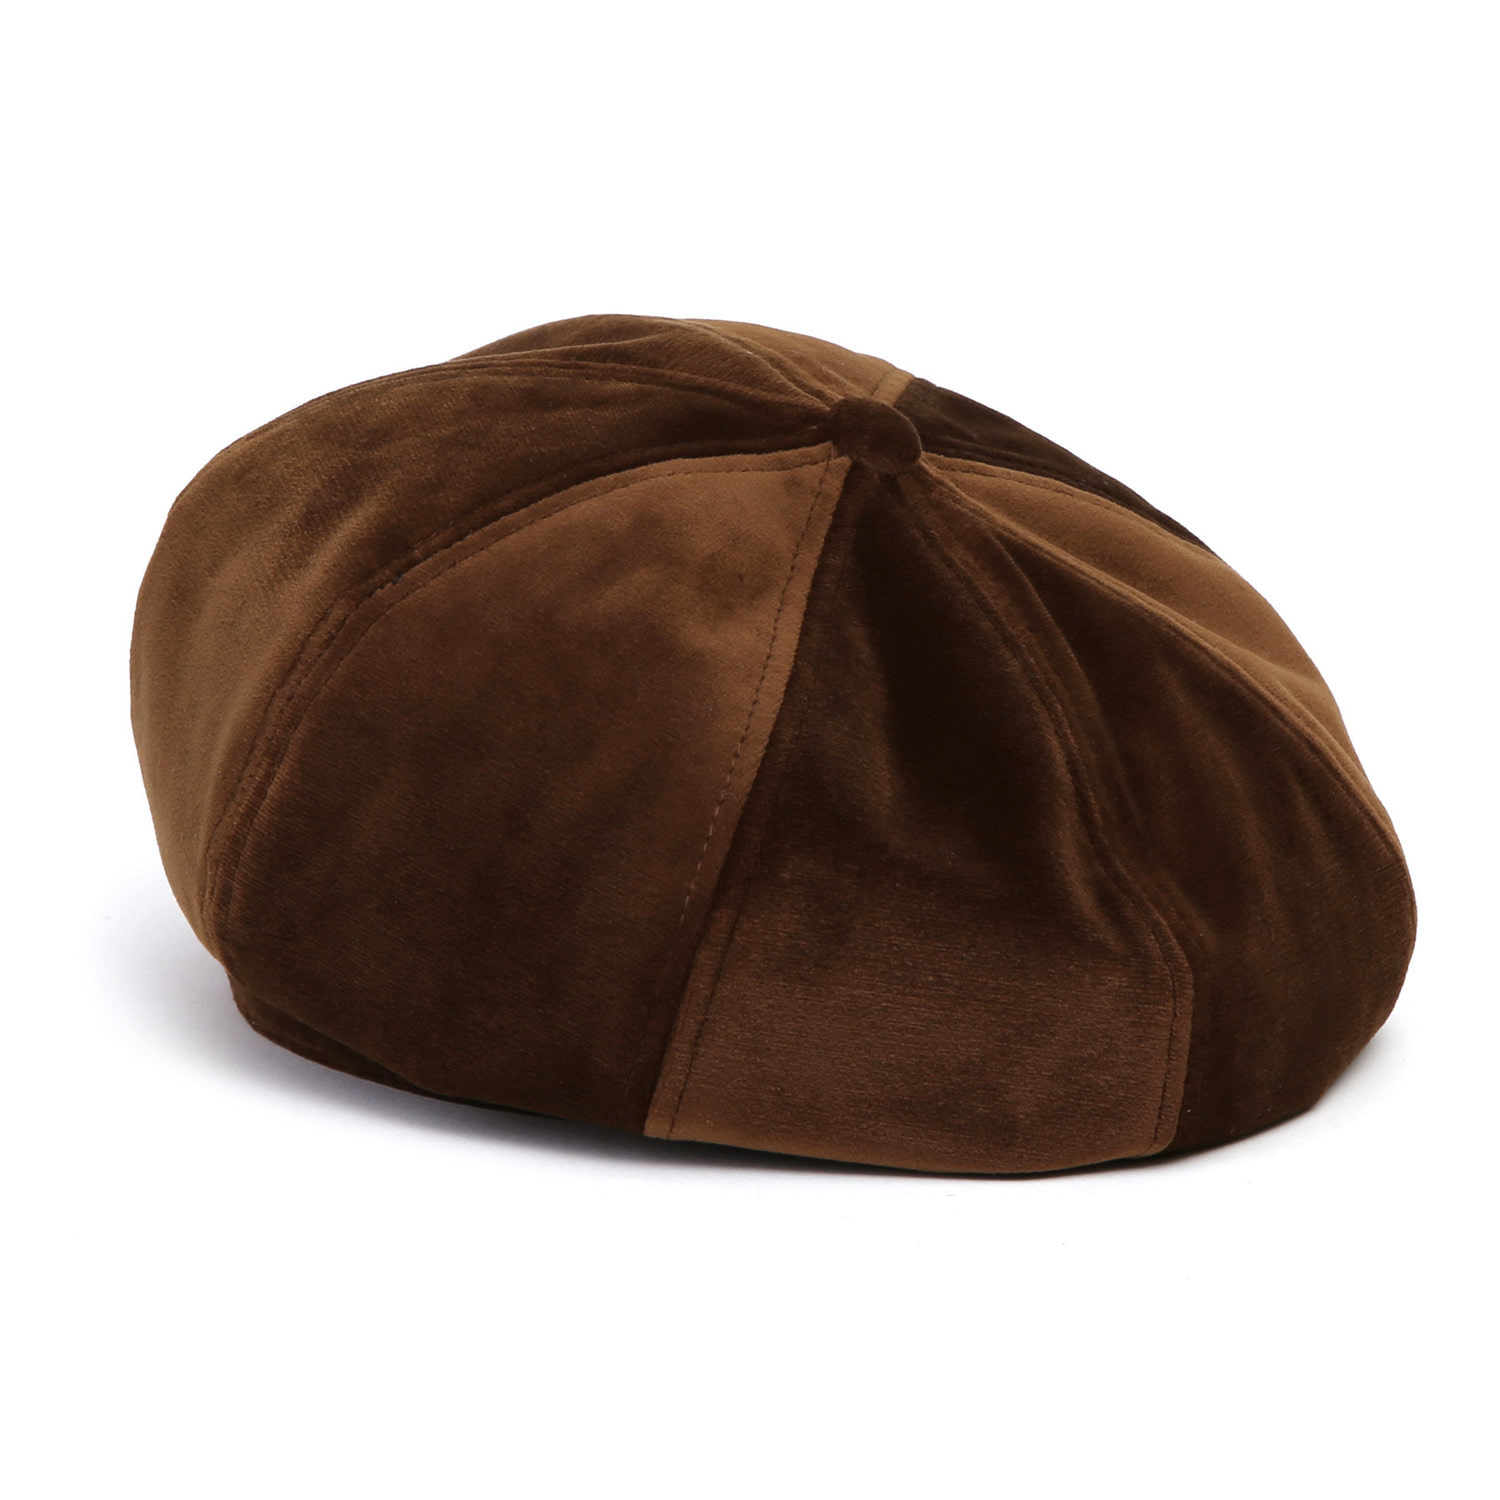 [2차 재입고] BREAD BERET / VELVET / MINK BROWN